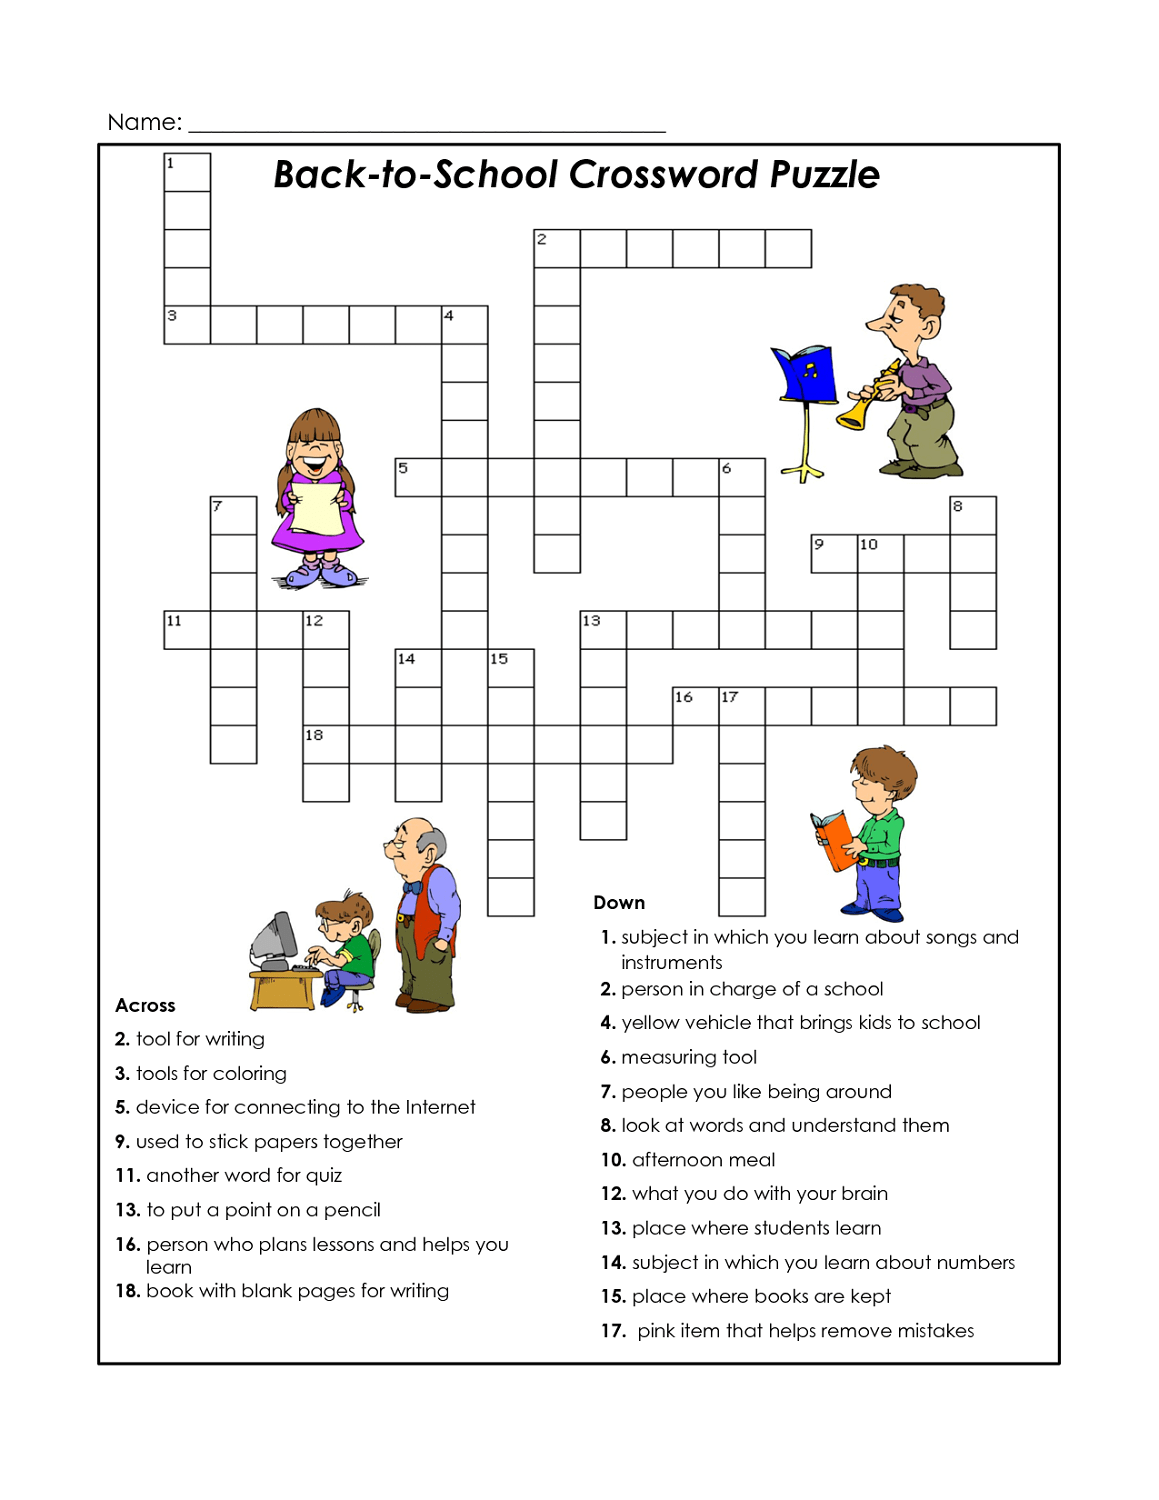 Cross Word Puzzles For Kids